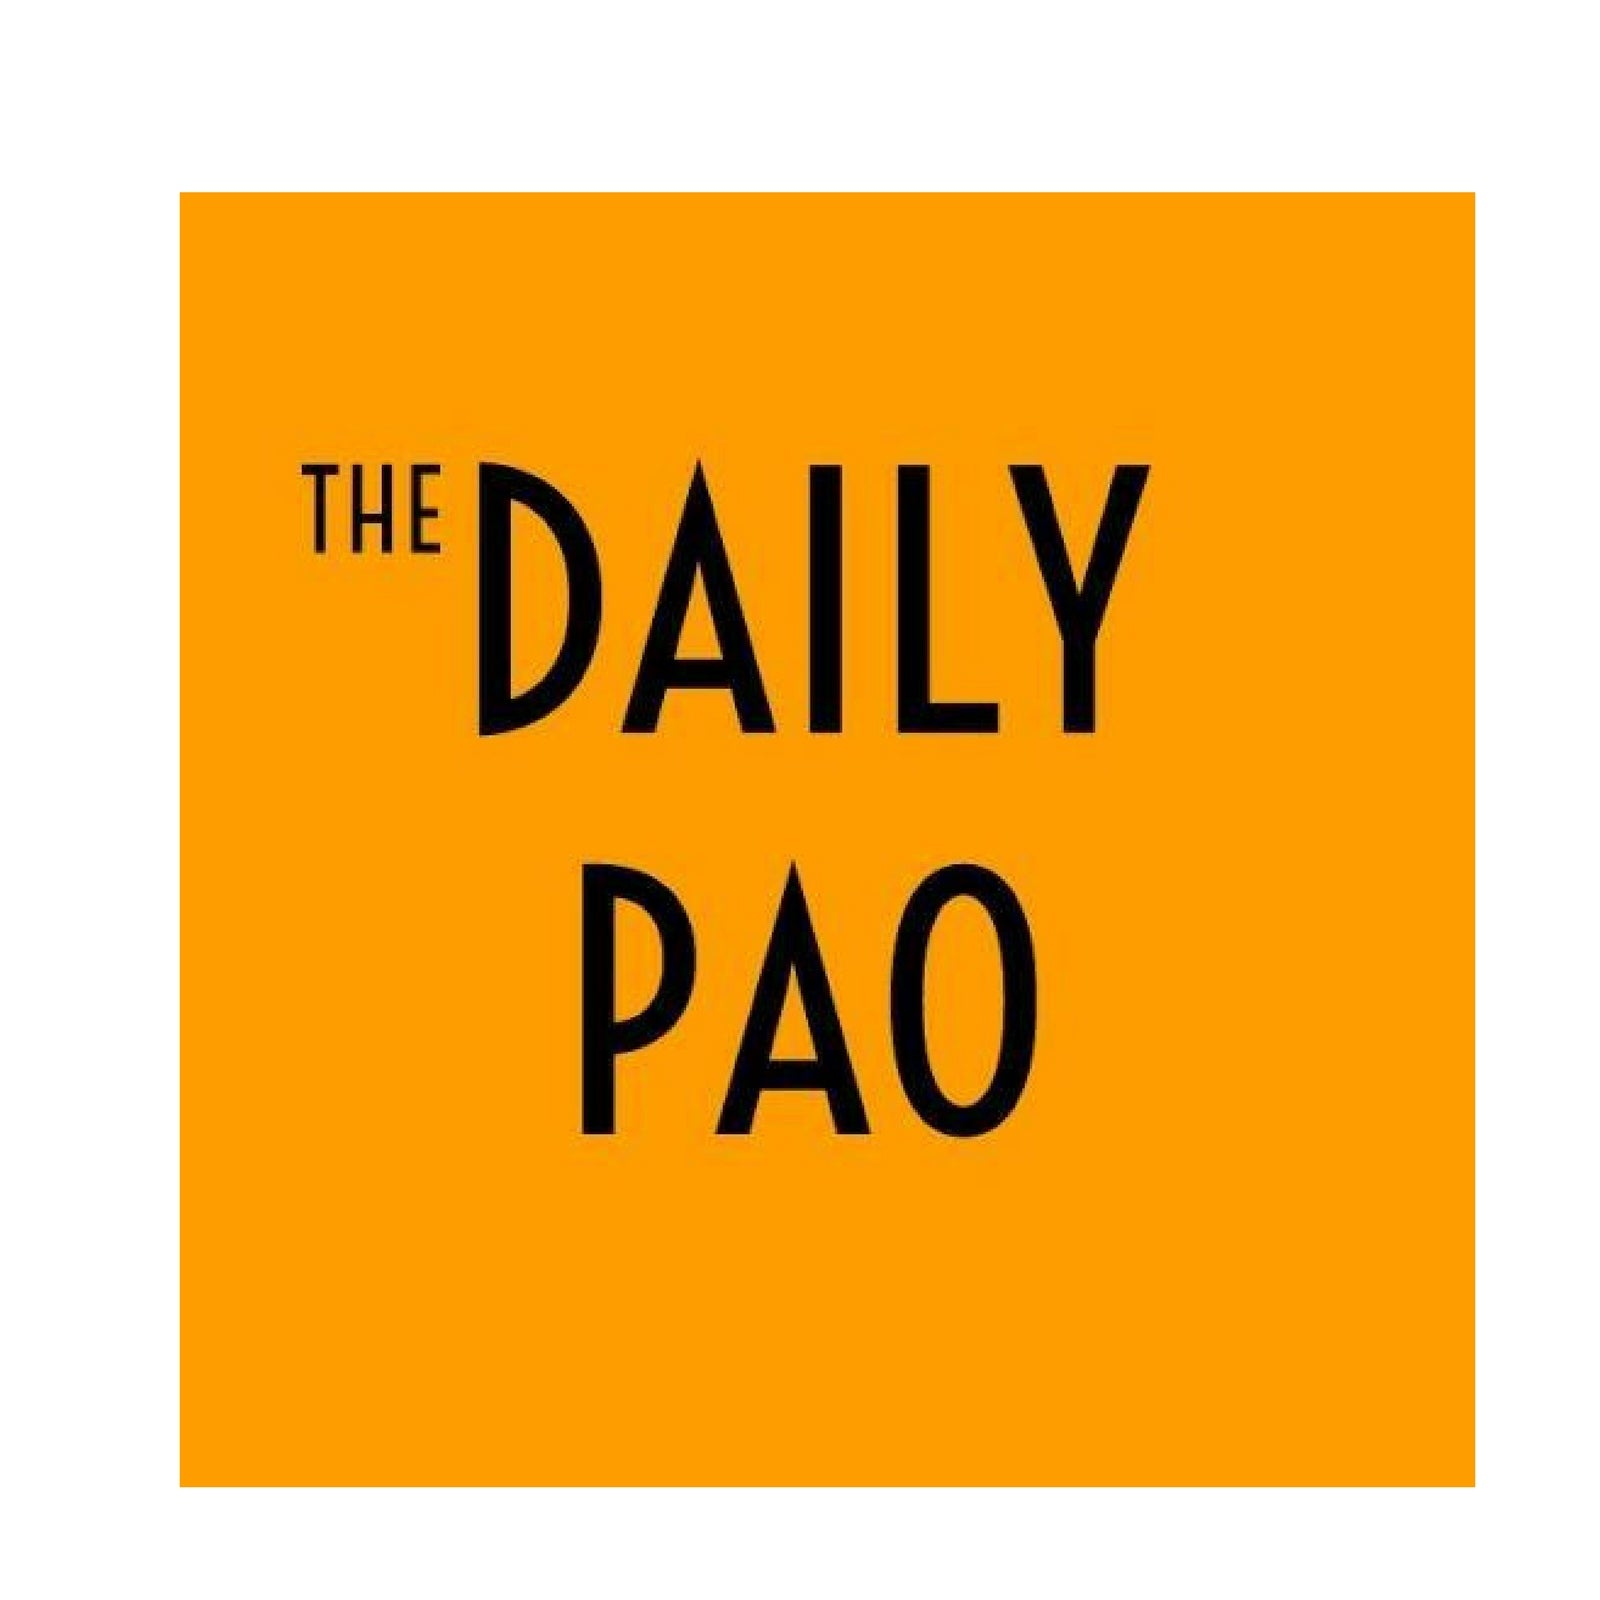 The Daily Pao